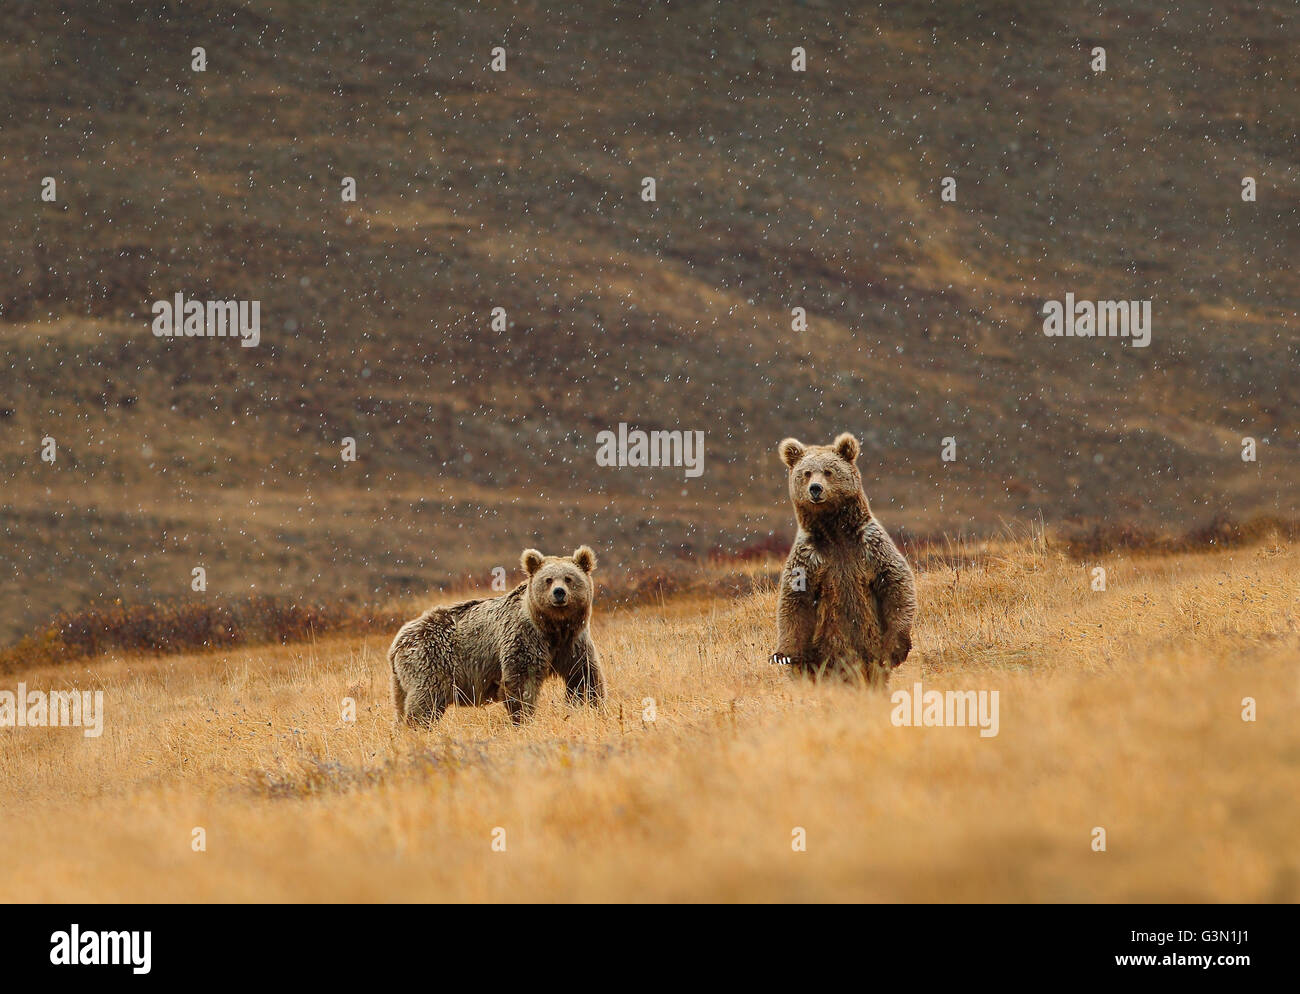 Himalayan brown bear - Stock Image